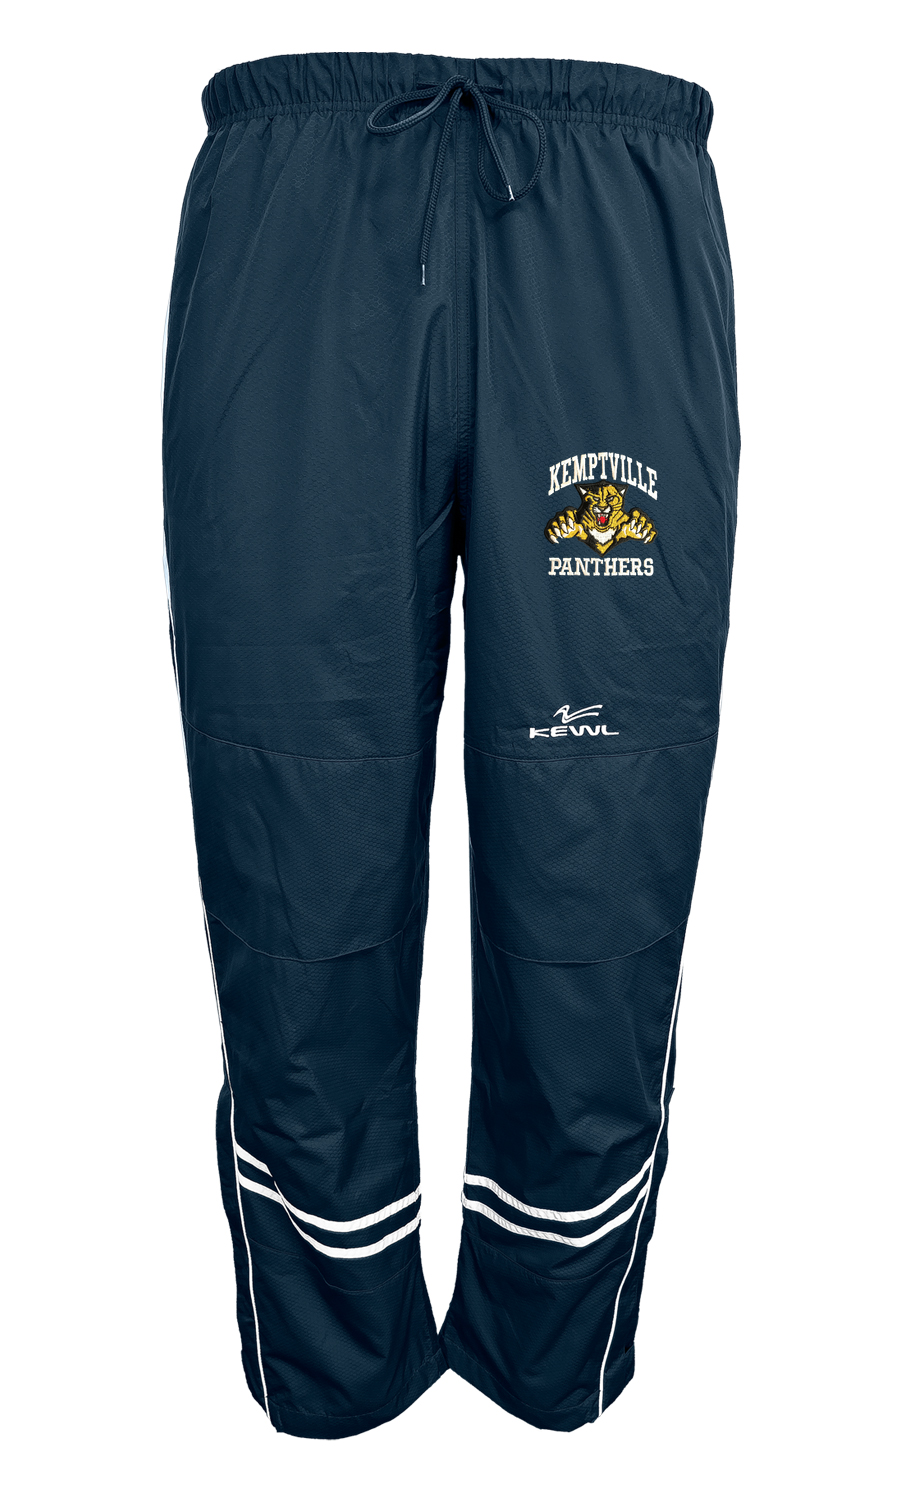 Panthers - Lightweight Pants - Inventory